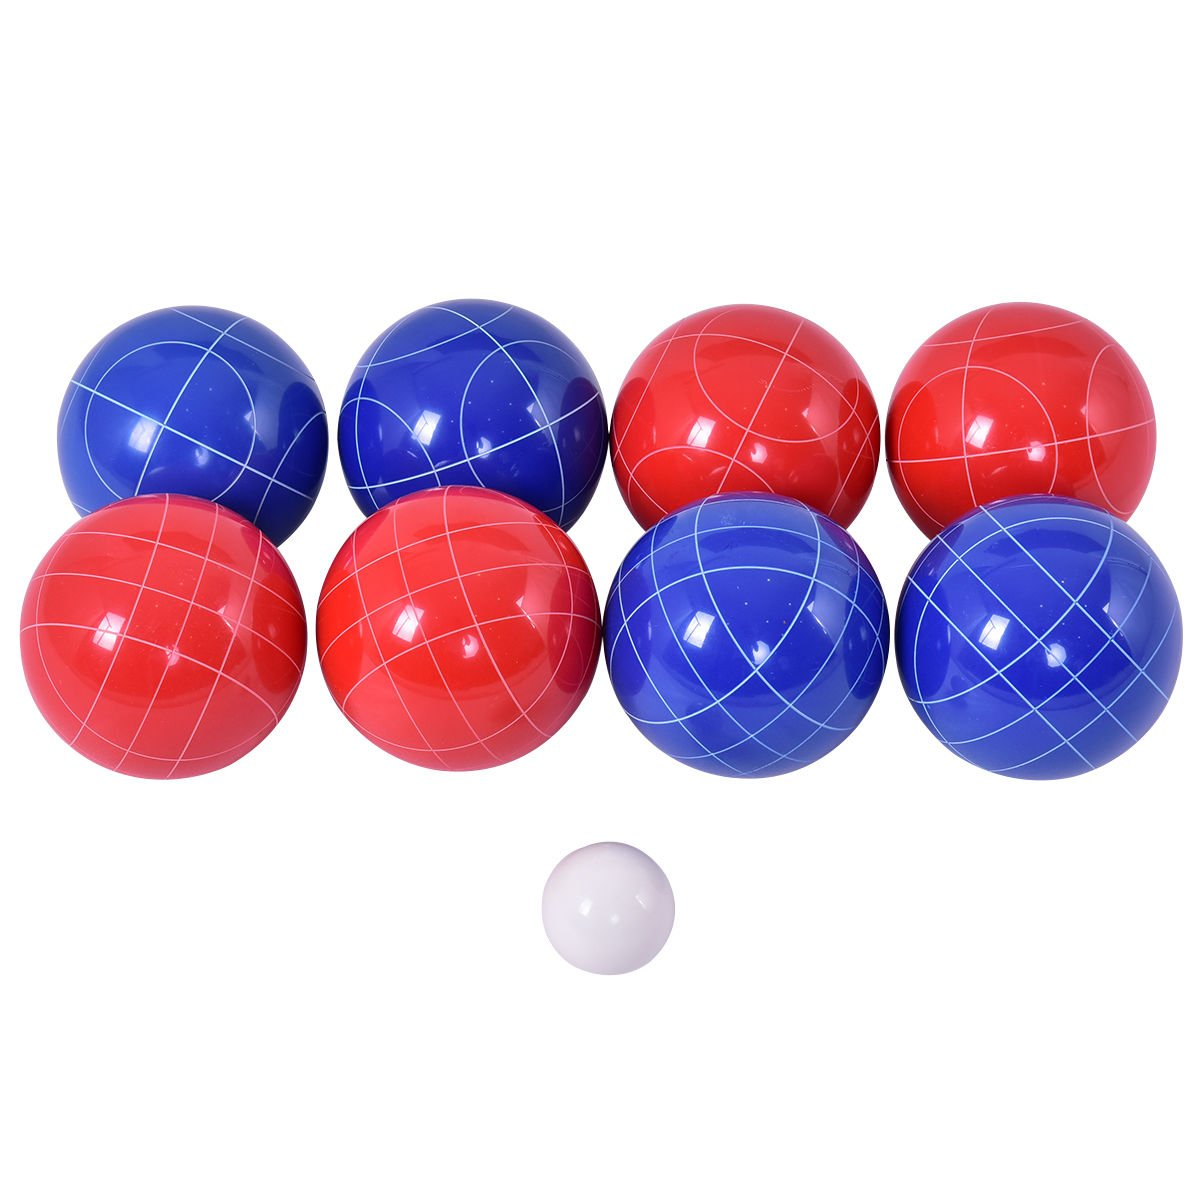 Outdoor Grassy Bocce Ball Backyard Sport w/Set 8 Red & Blue Balls Pallino